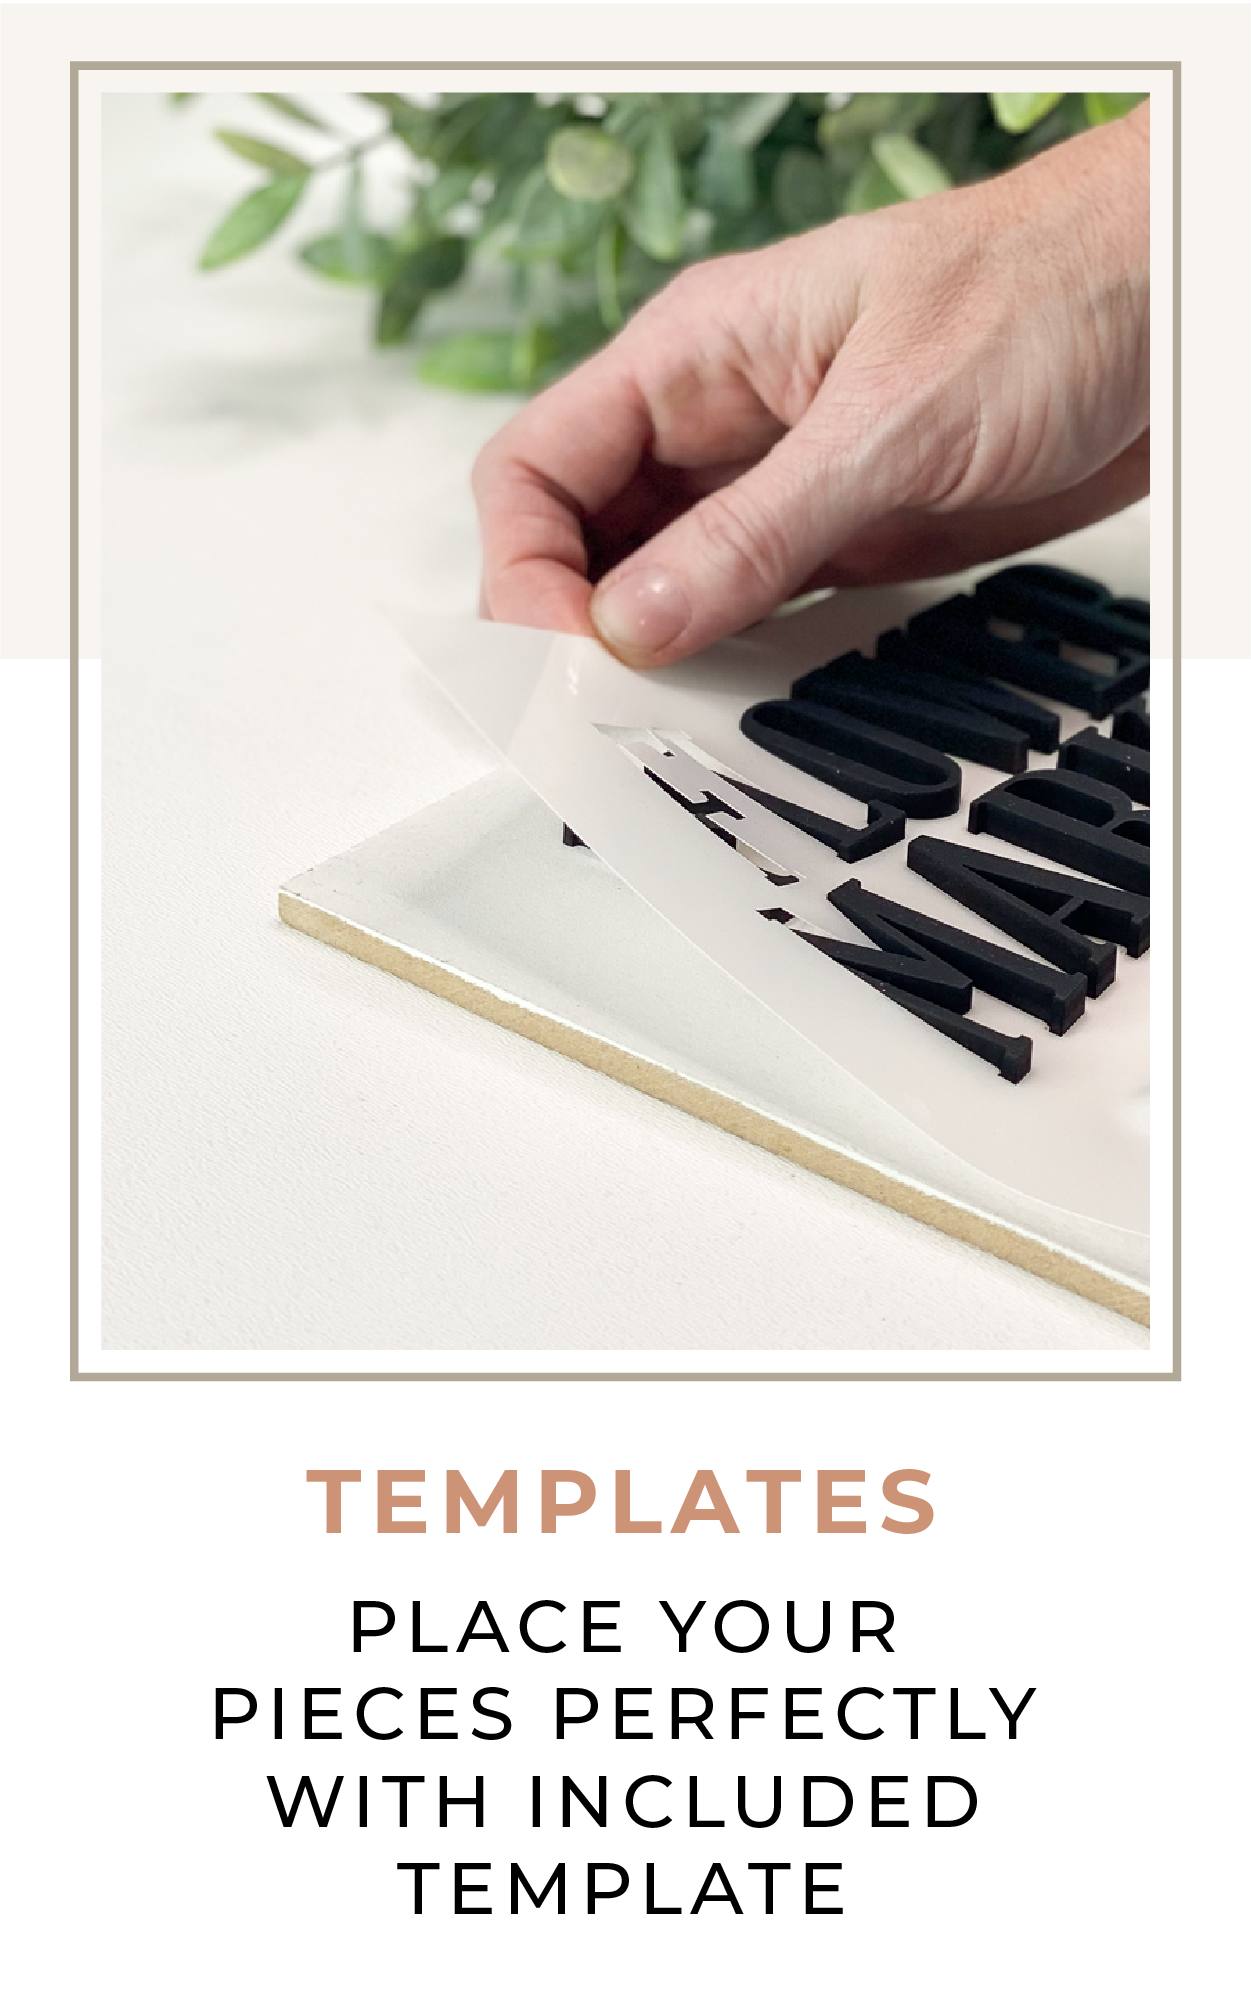 Place your pieces perfectly with included template